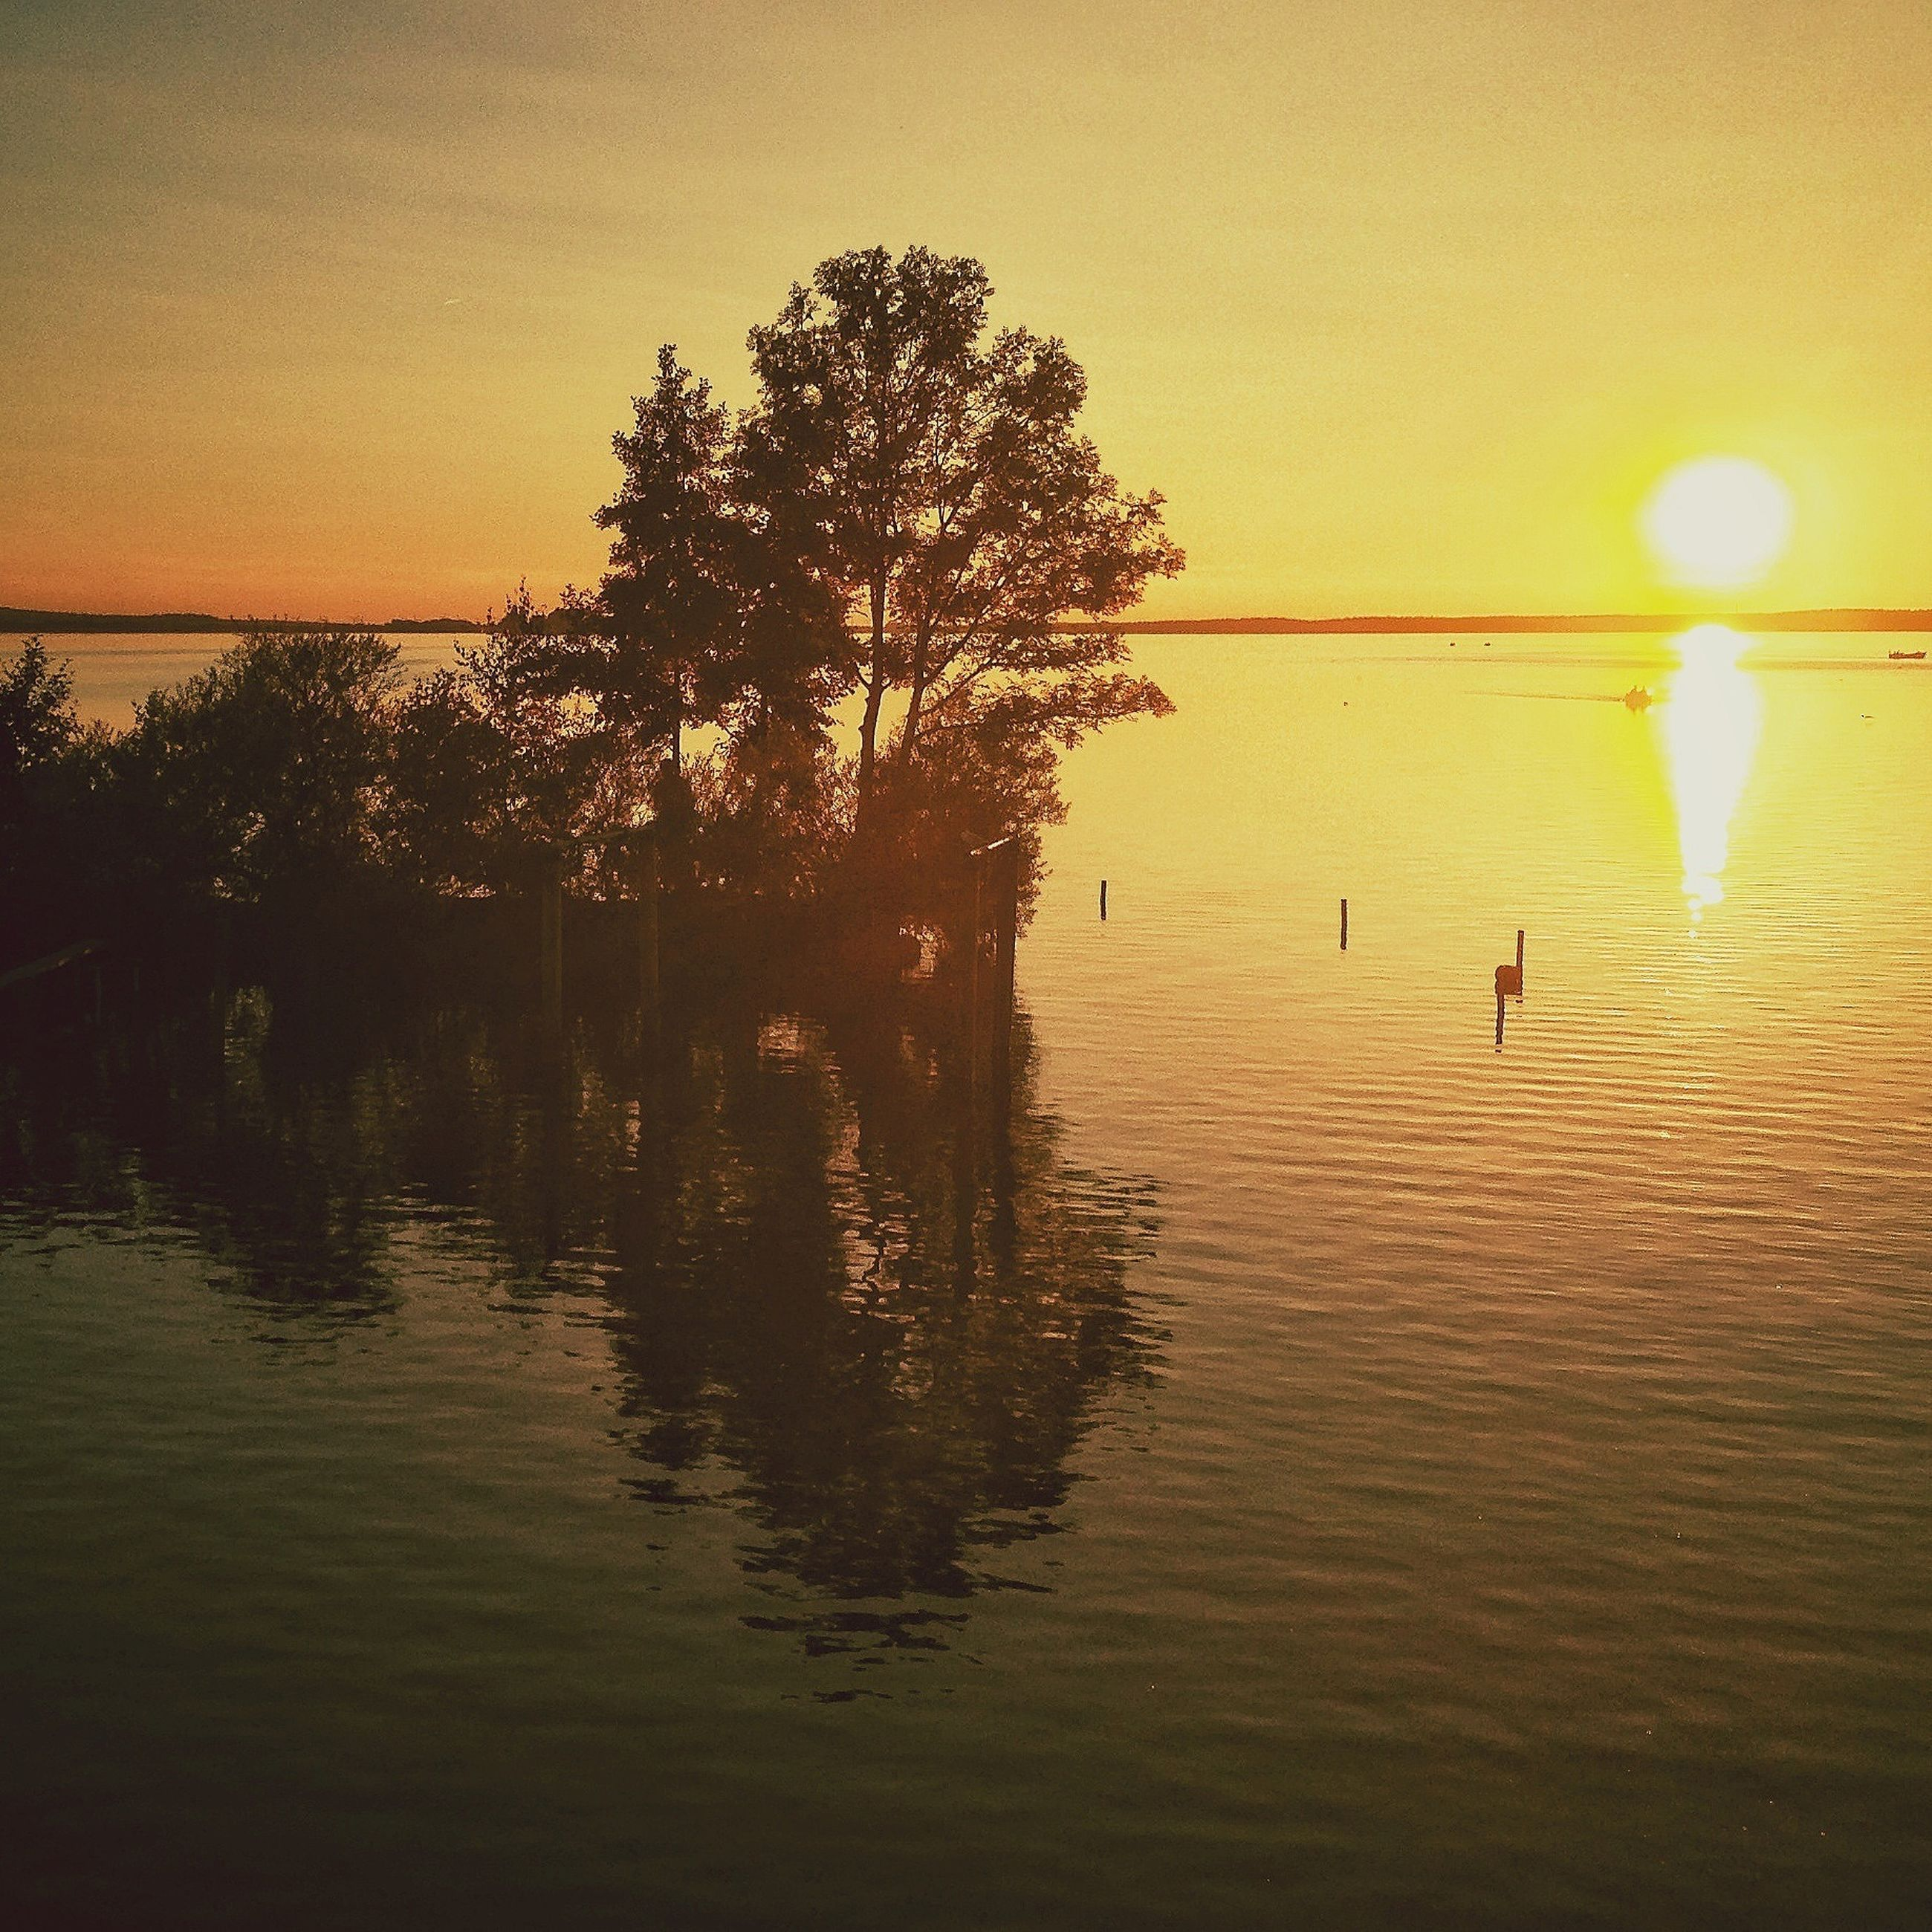 sunset, water, tranquil scene, sun, tree, tranquility, scenics, silhouette, beauty in nature, sea, reflection, nature, sky, idyllic, lake, waterfront, clear sky, orange color, sunlight, rippled